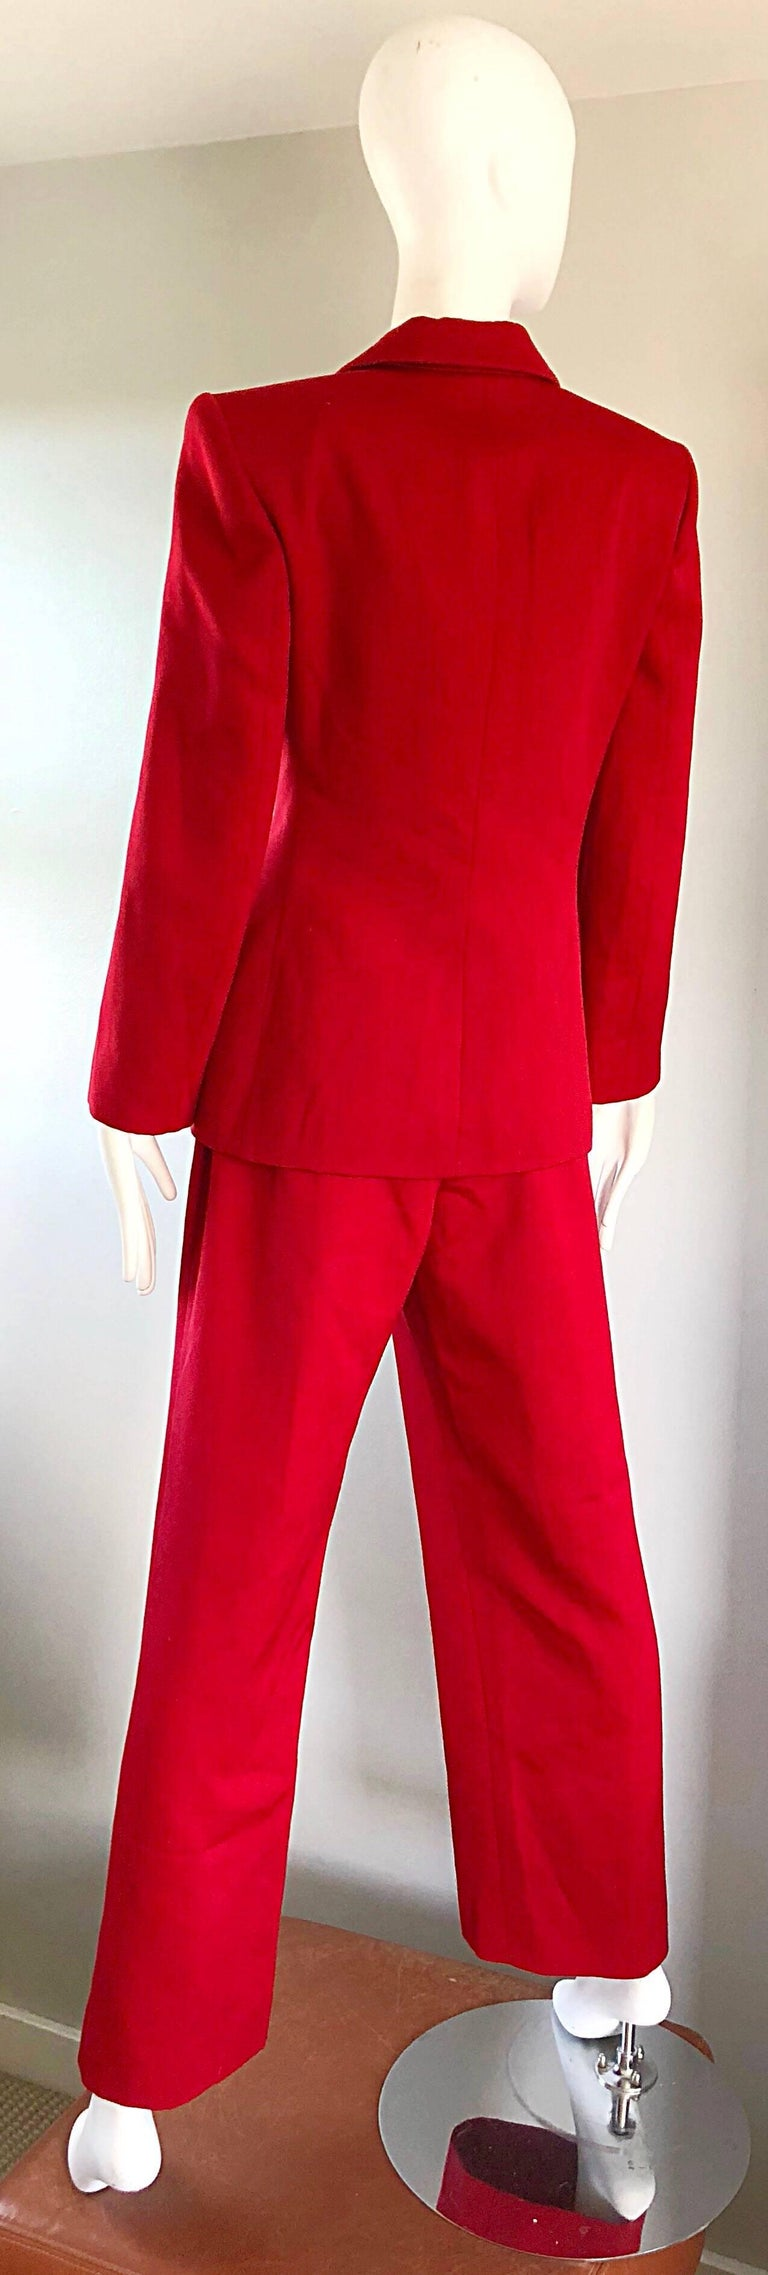 Isaac Mizrahi Vintage 1990s Lipstick Red Wide Leg Wool Le Smoking 90s Pants Suit 8